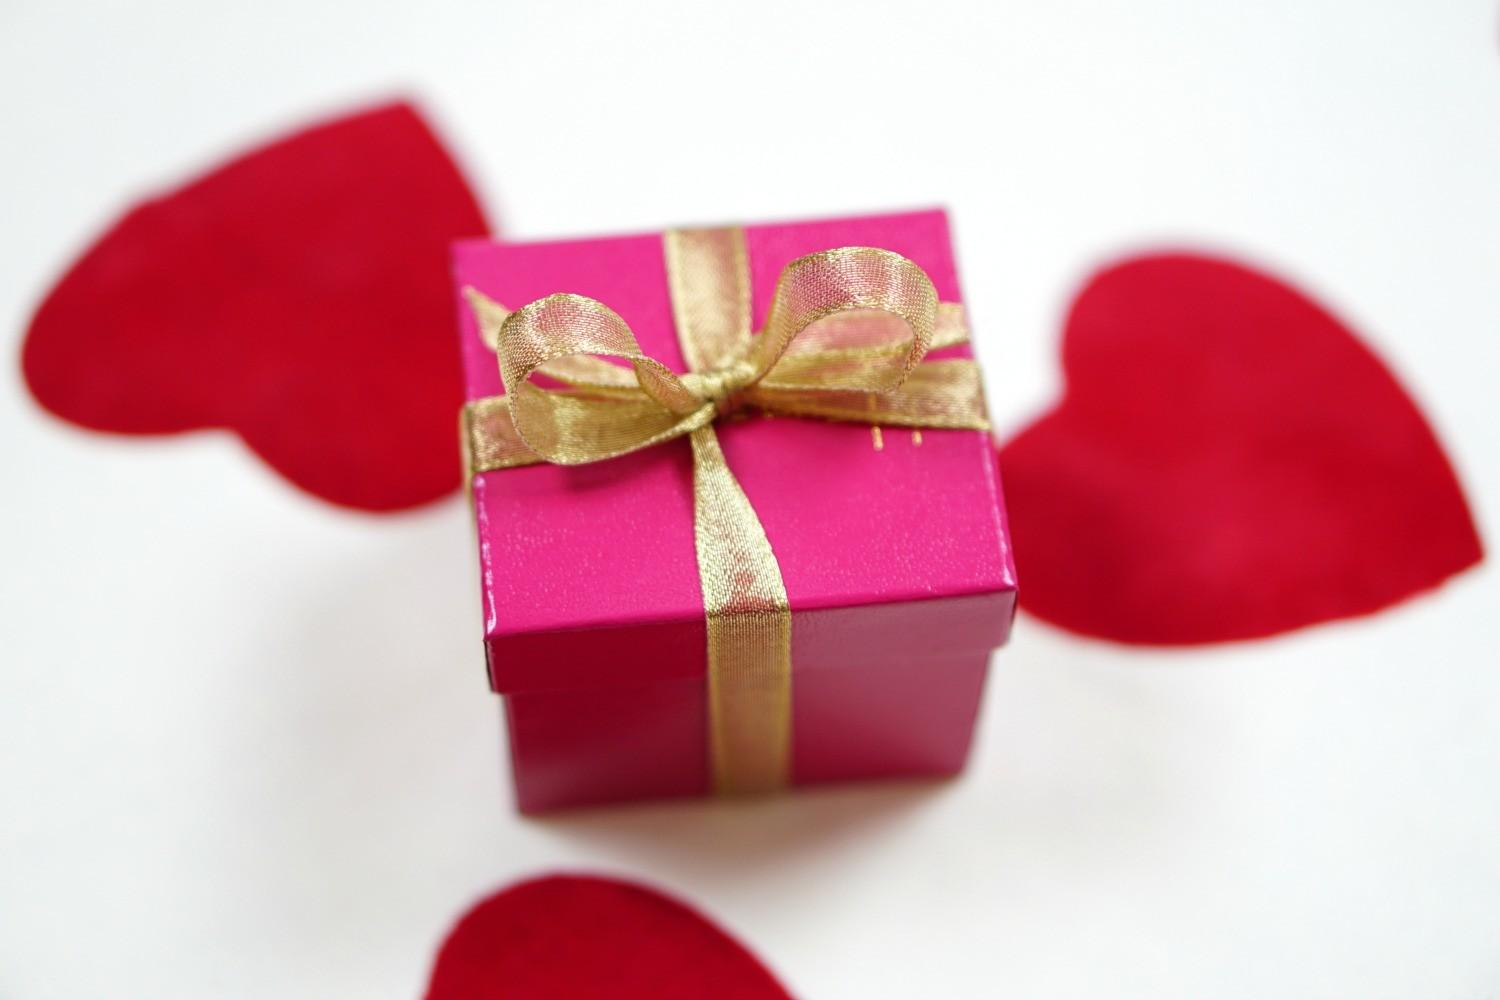 Sexy valentine's day gift ideas for men